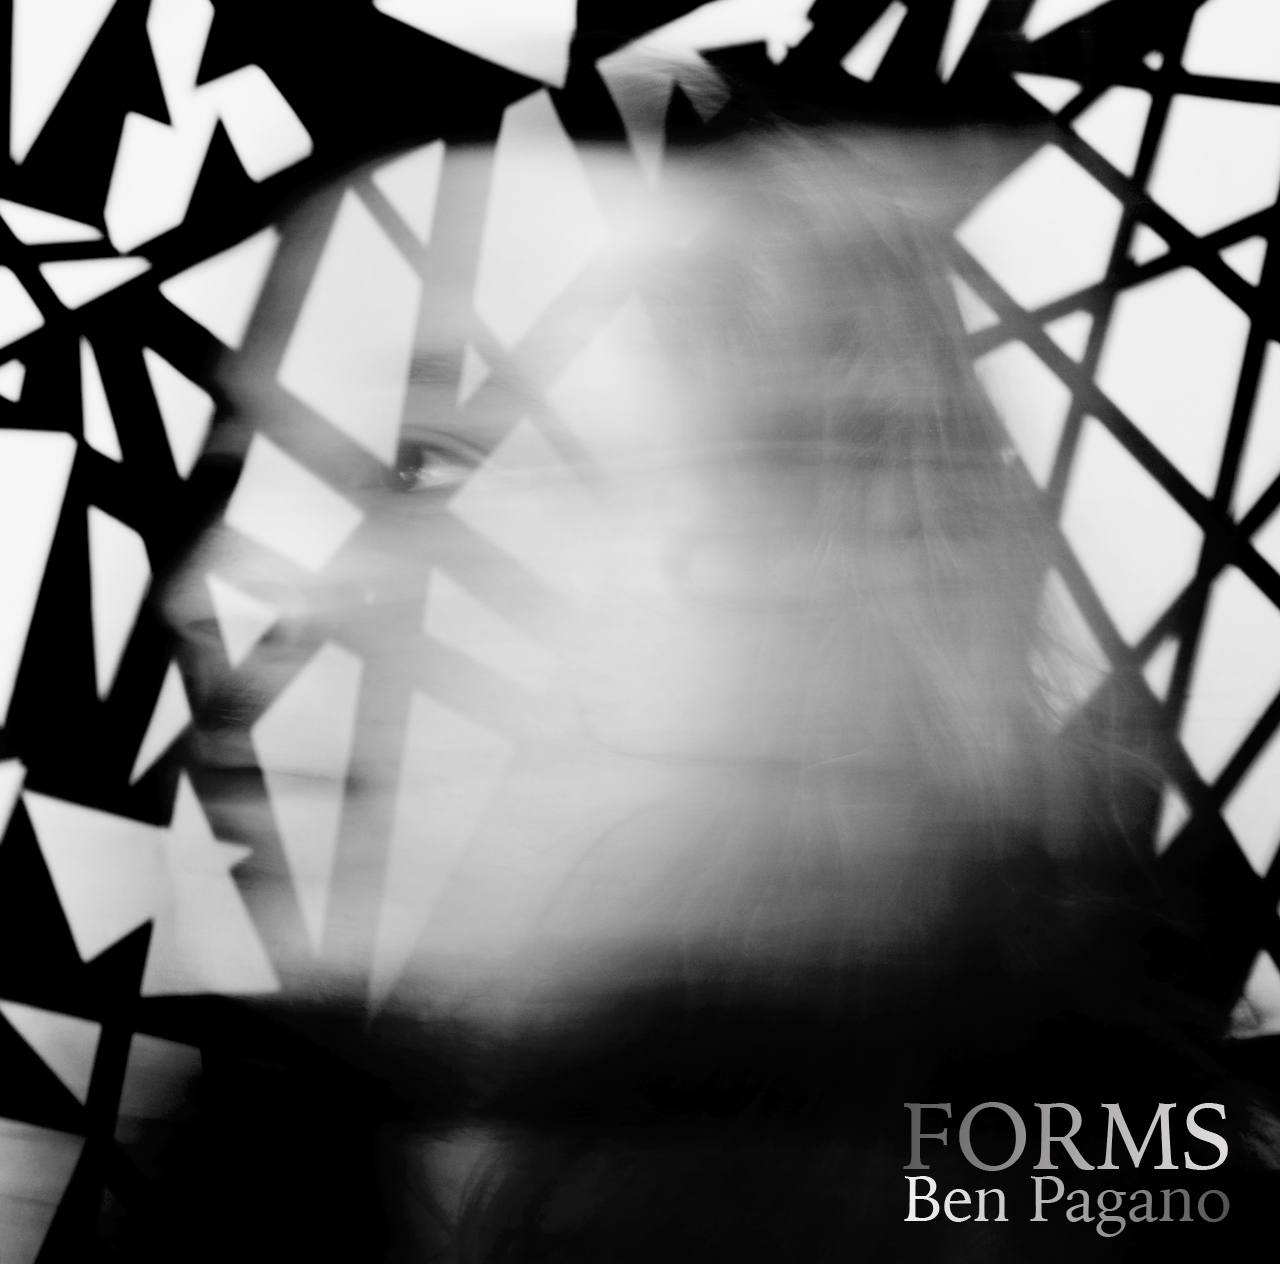 Forms LP  Released April 23, 2017